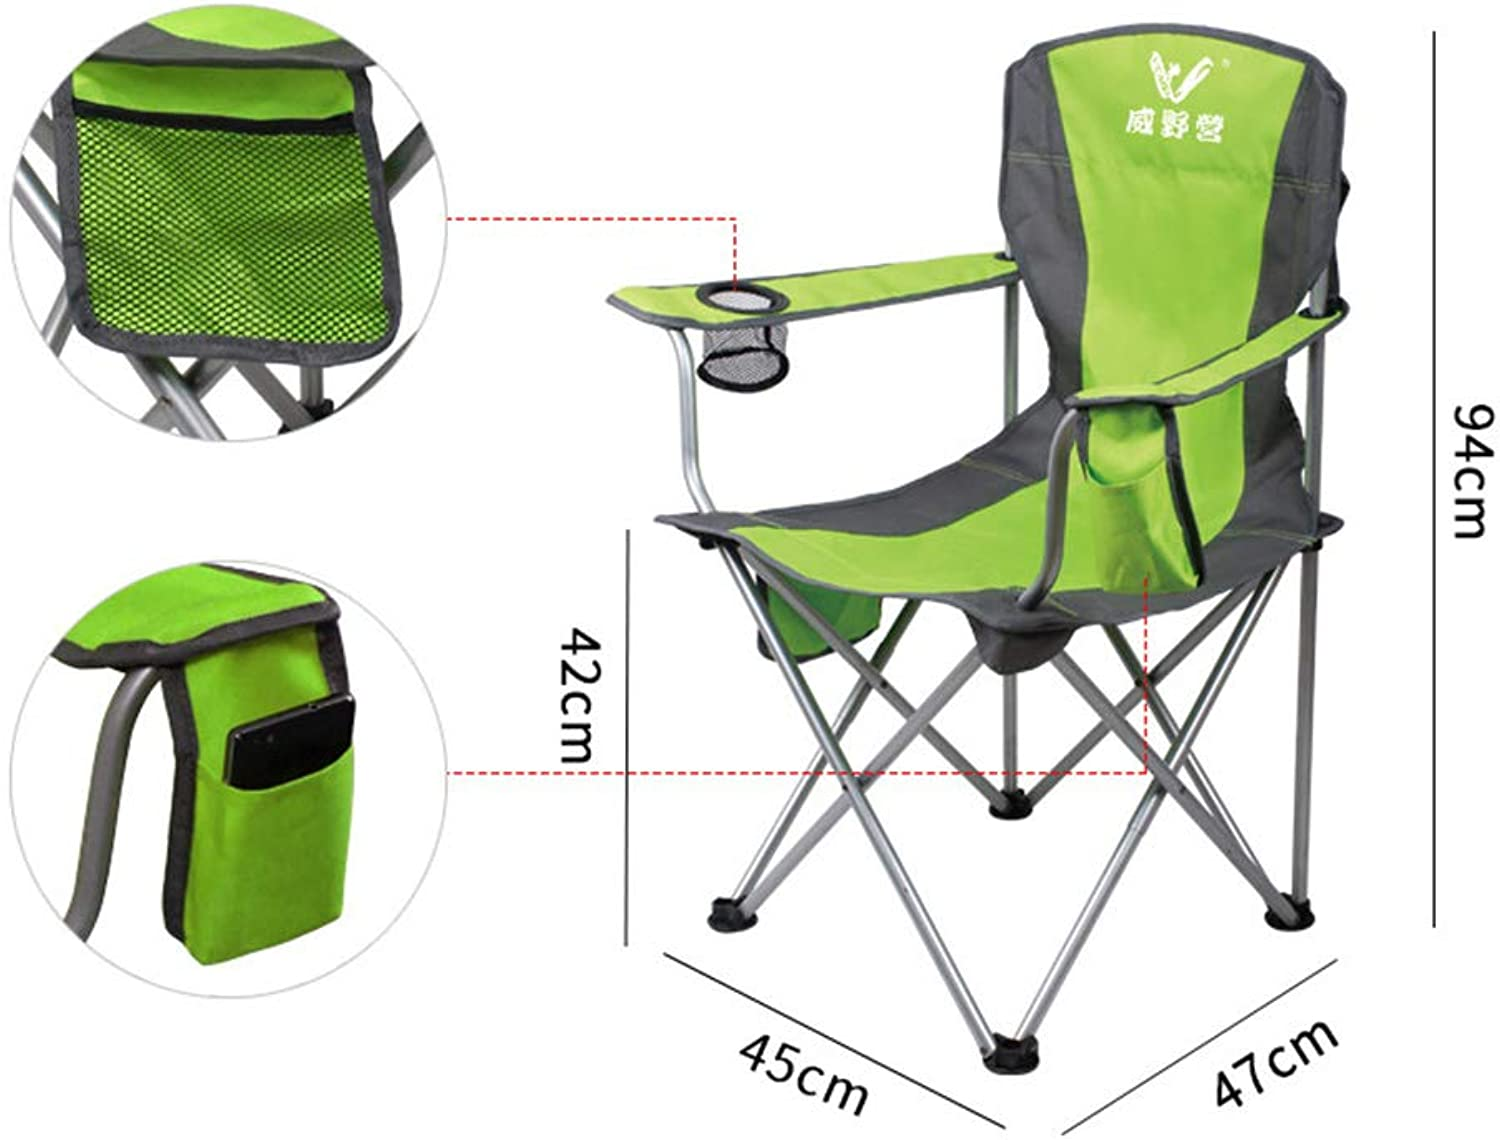 Camping Outdoor Folding Chair Portable Small Mazar Light Lunch Break Recliner Home Beach Chair Fishing Chair Sketch